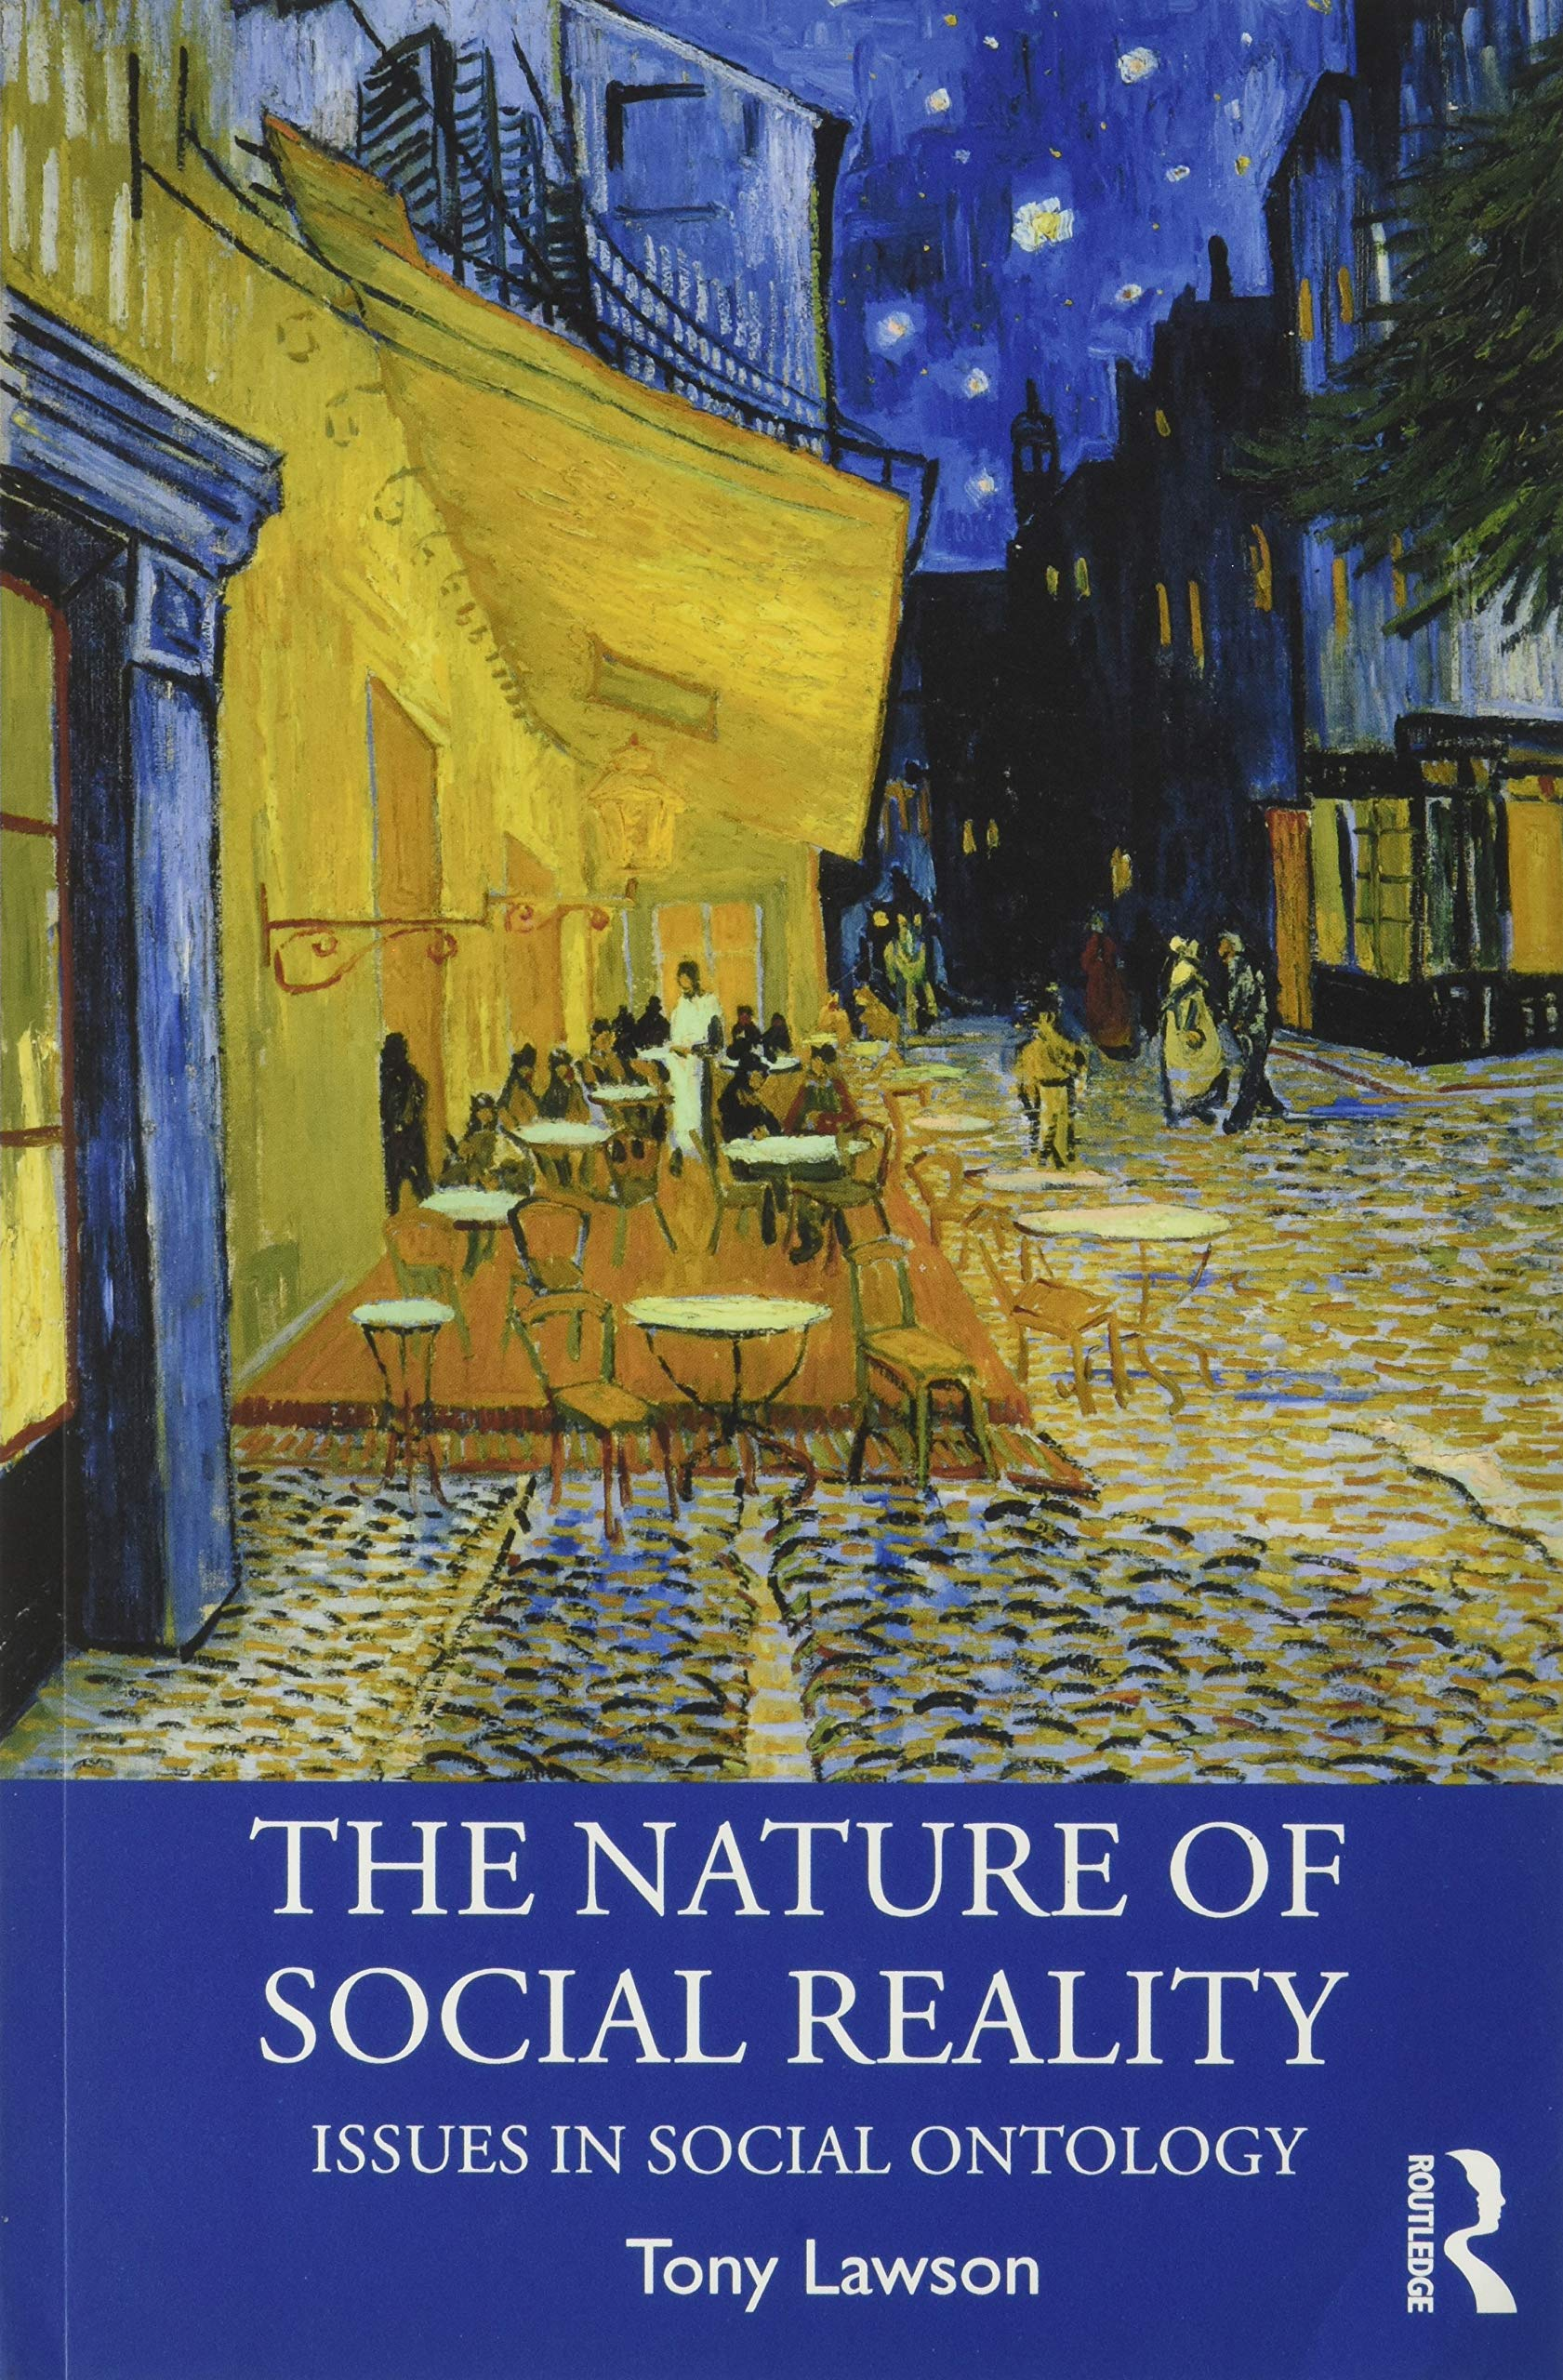 The Nature of Social Reality: Issues in Social Ontology (Economics as Social  Theory): Amazon.co.uk: Lawson, Tony: 9780367188931: Books